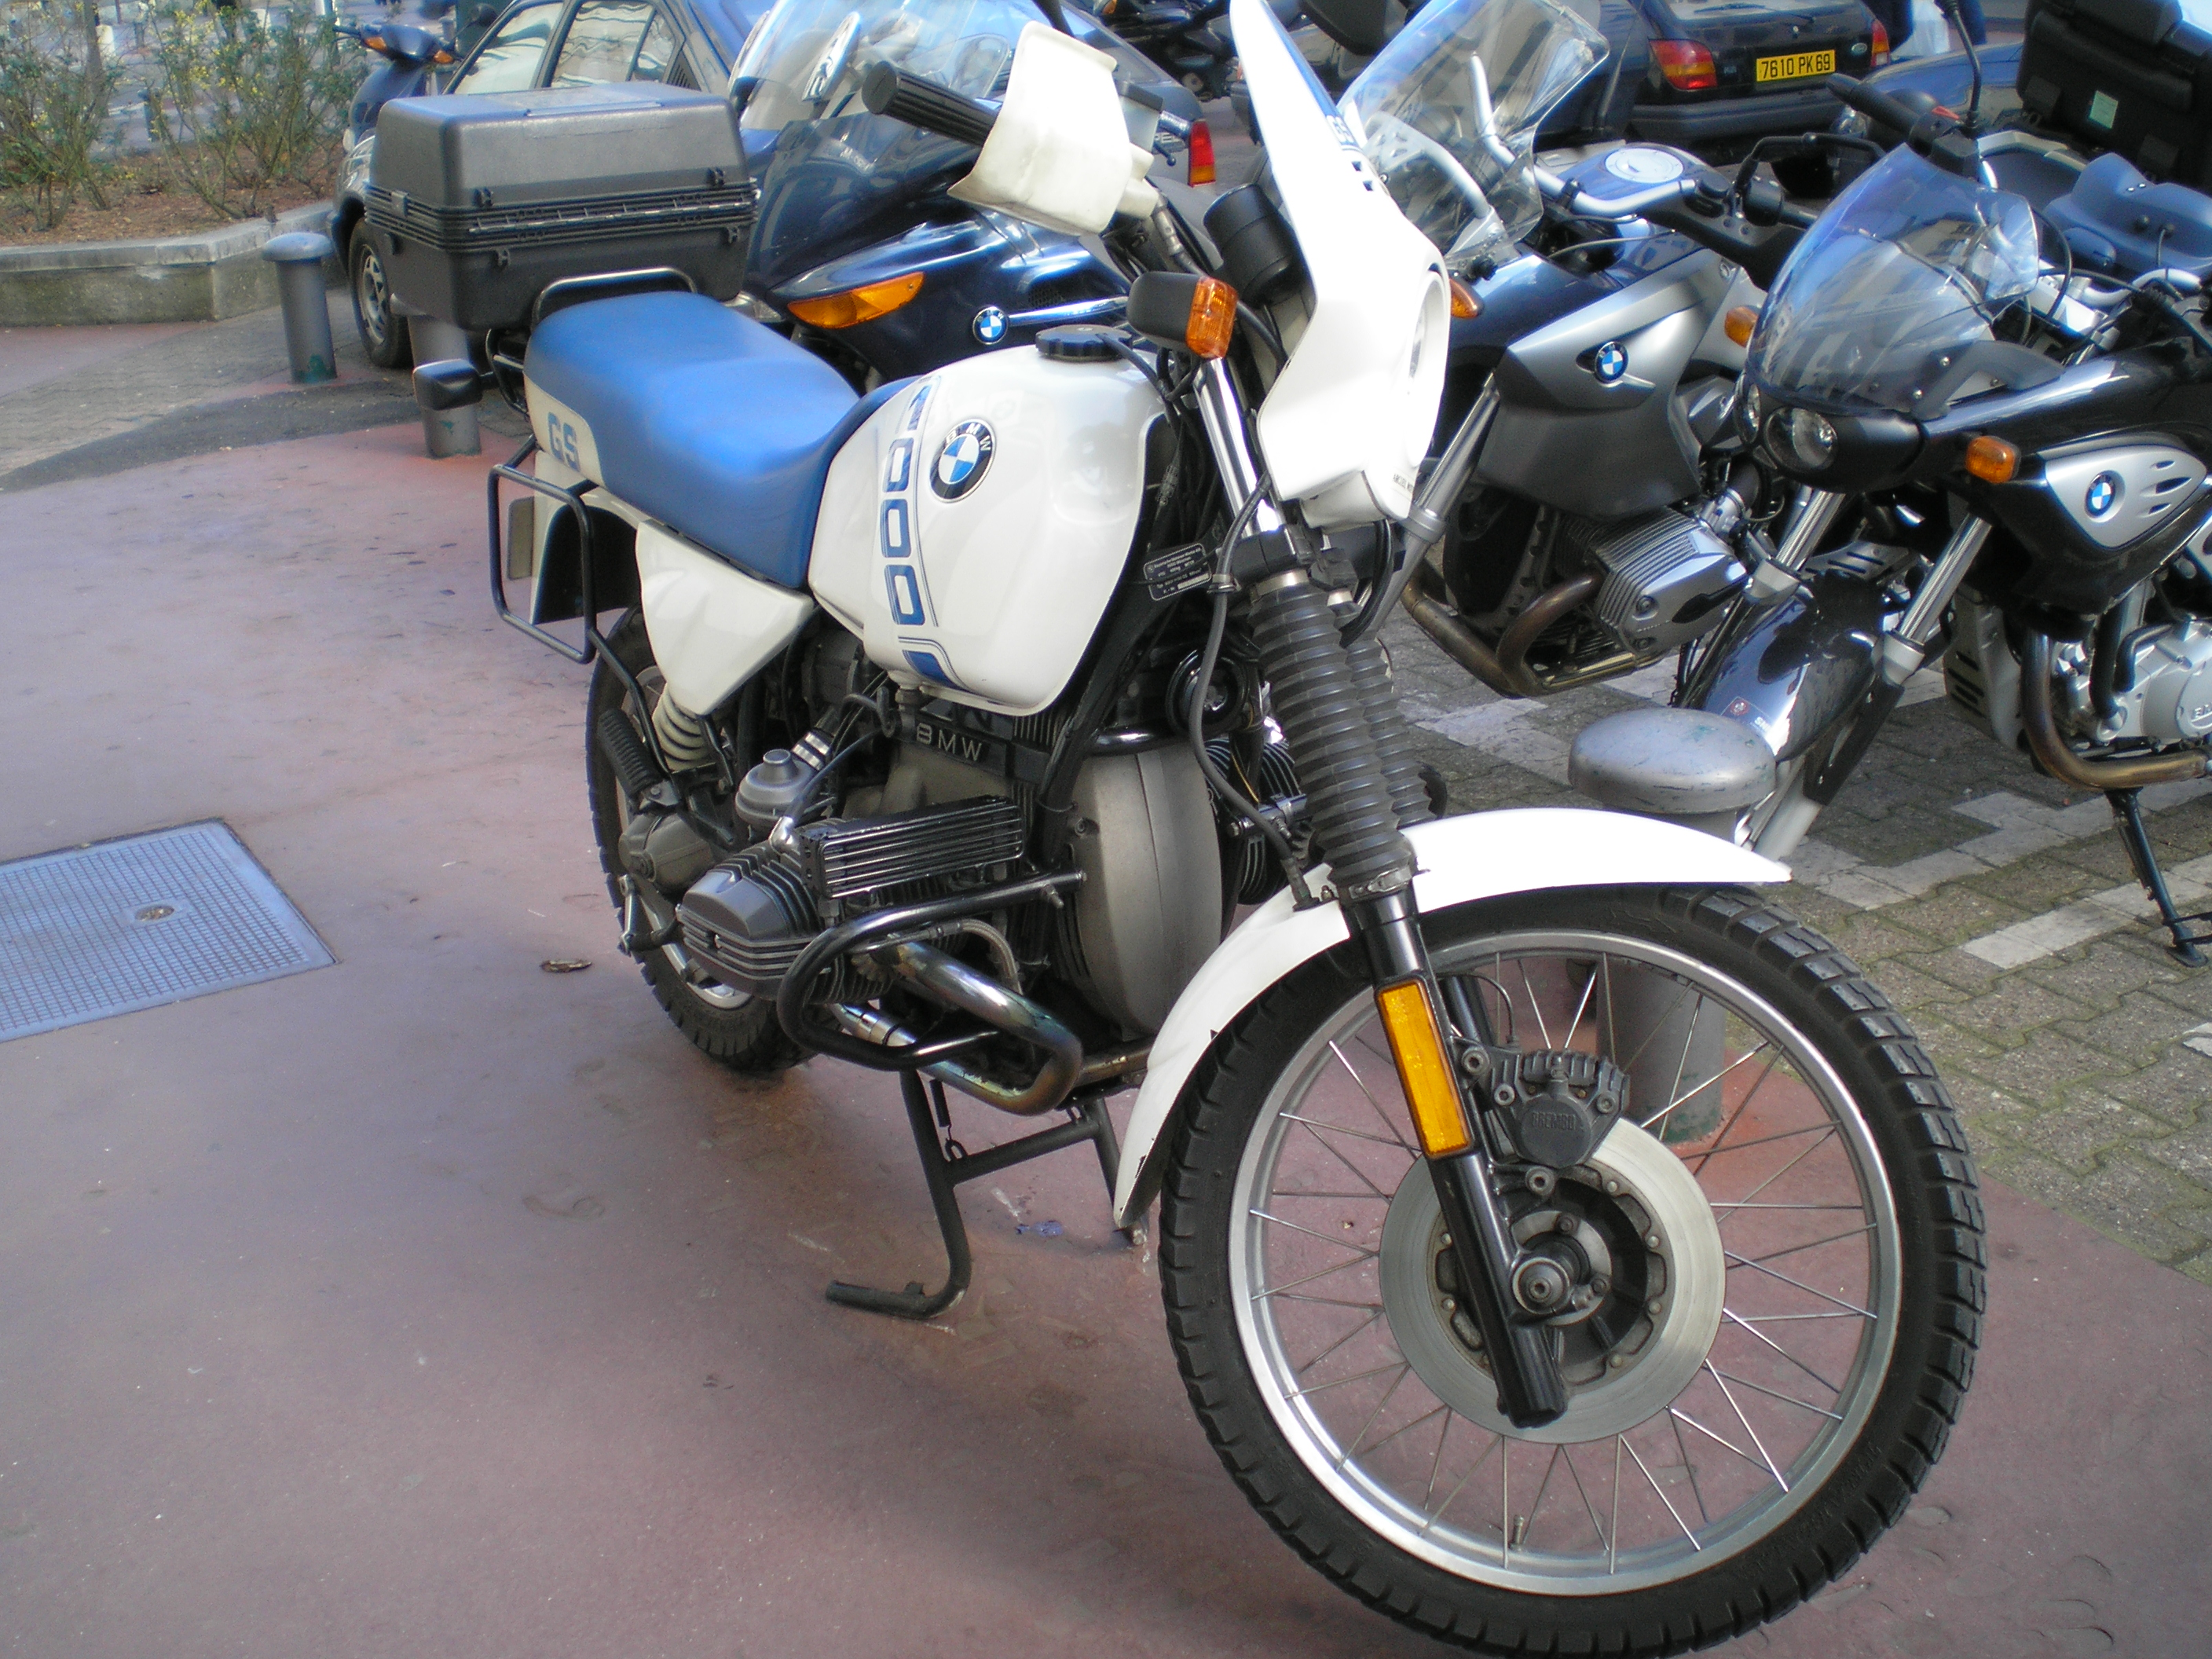 BMW R100GS 1991 images #5232